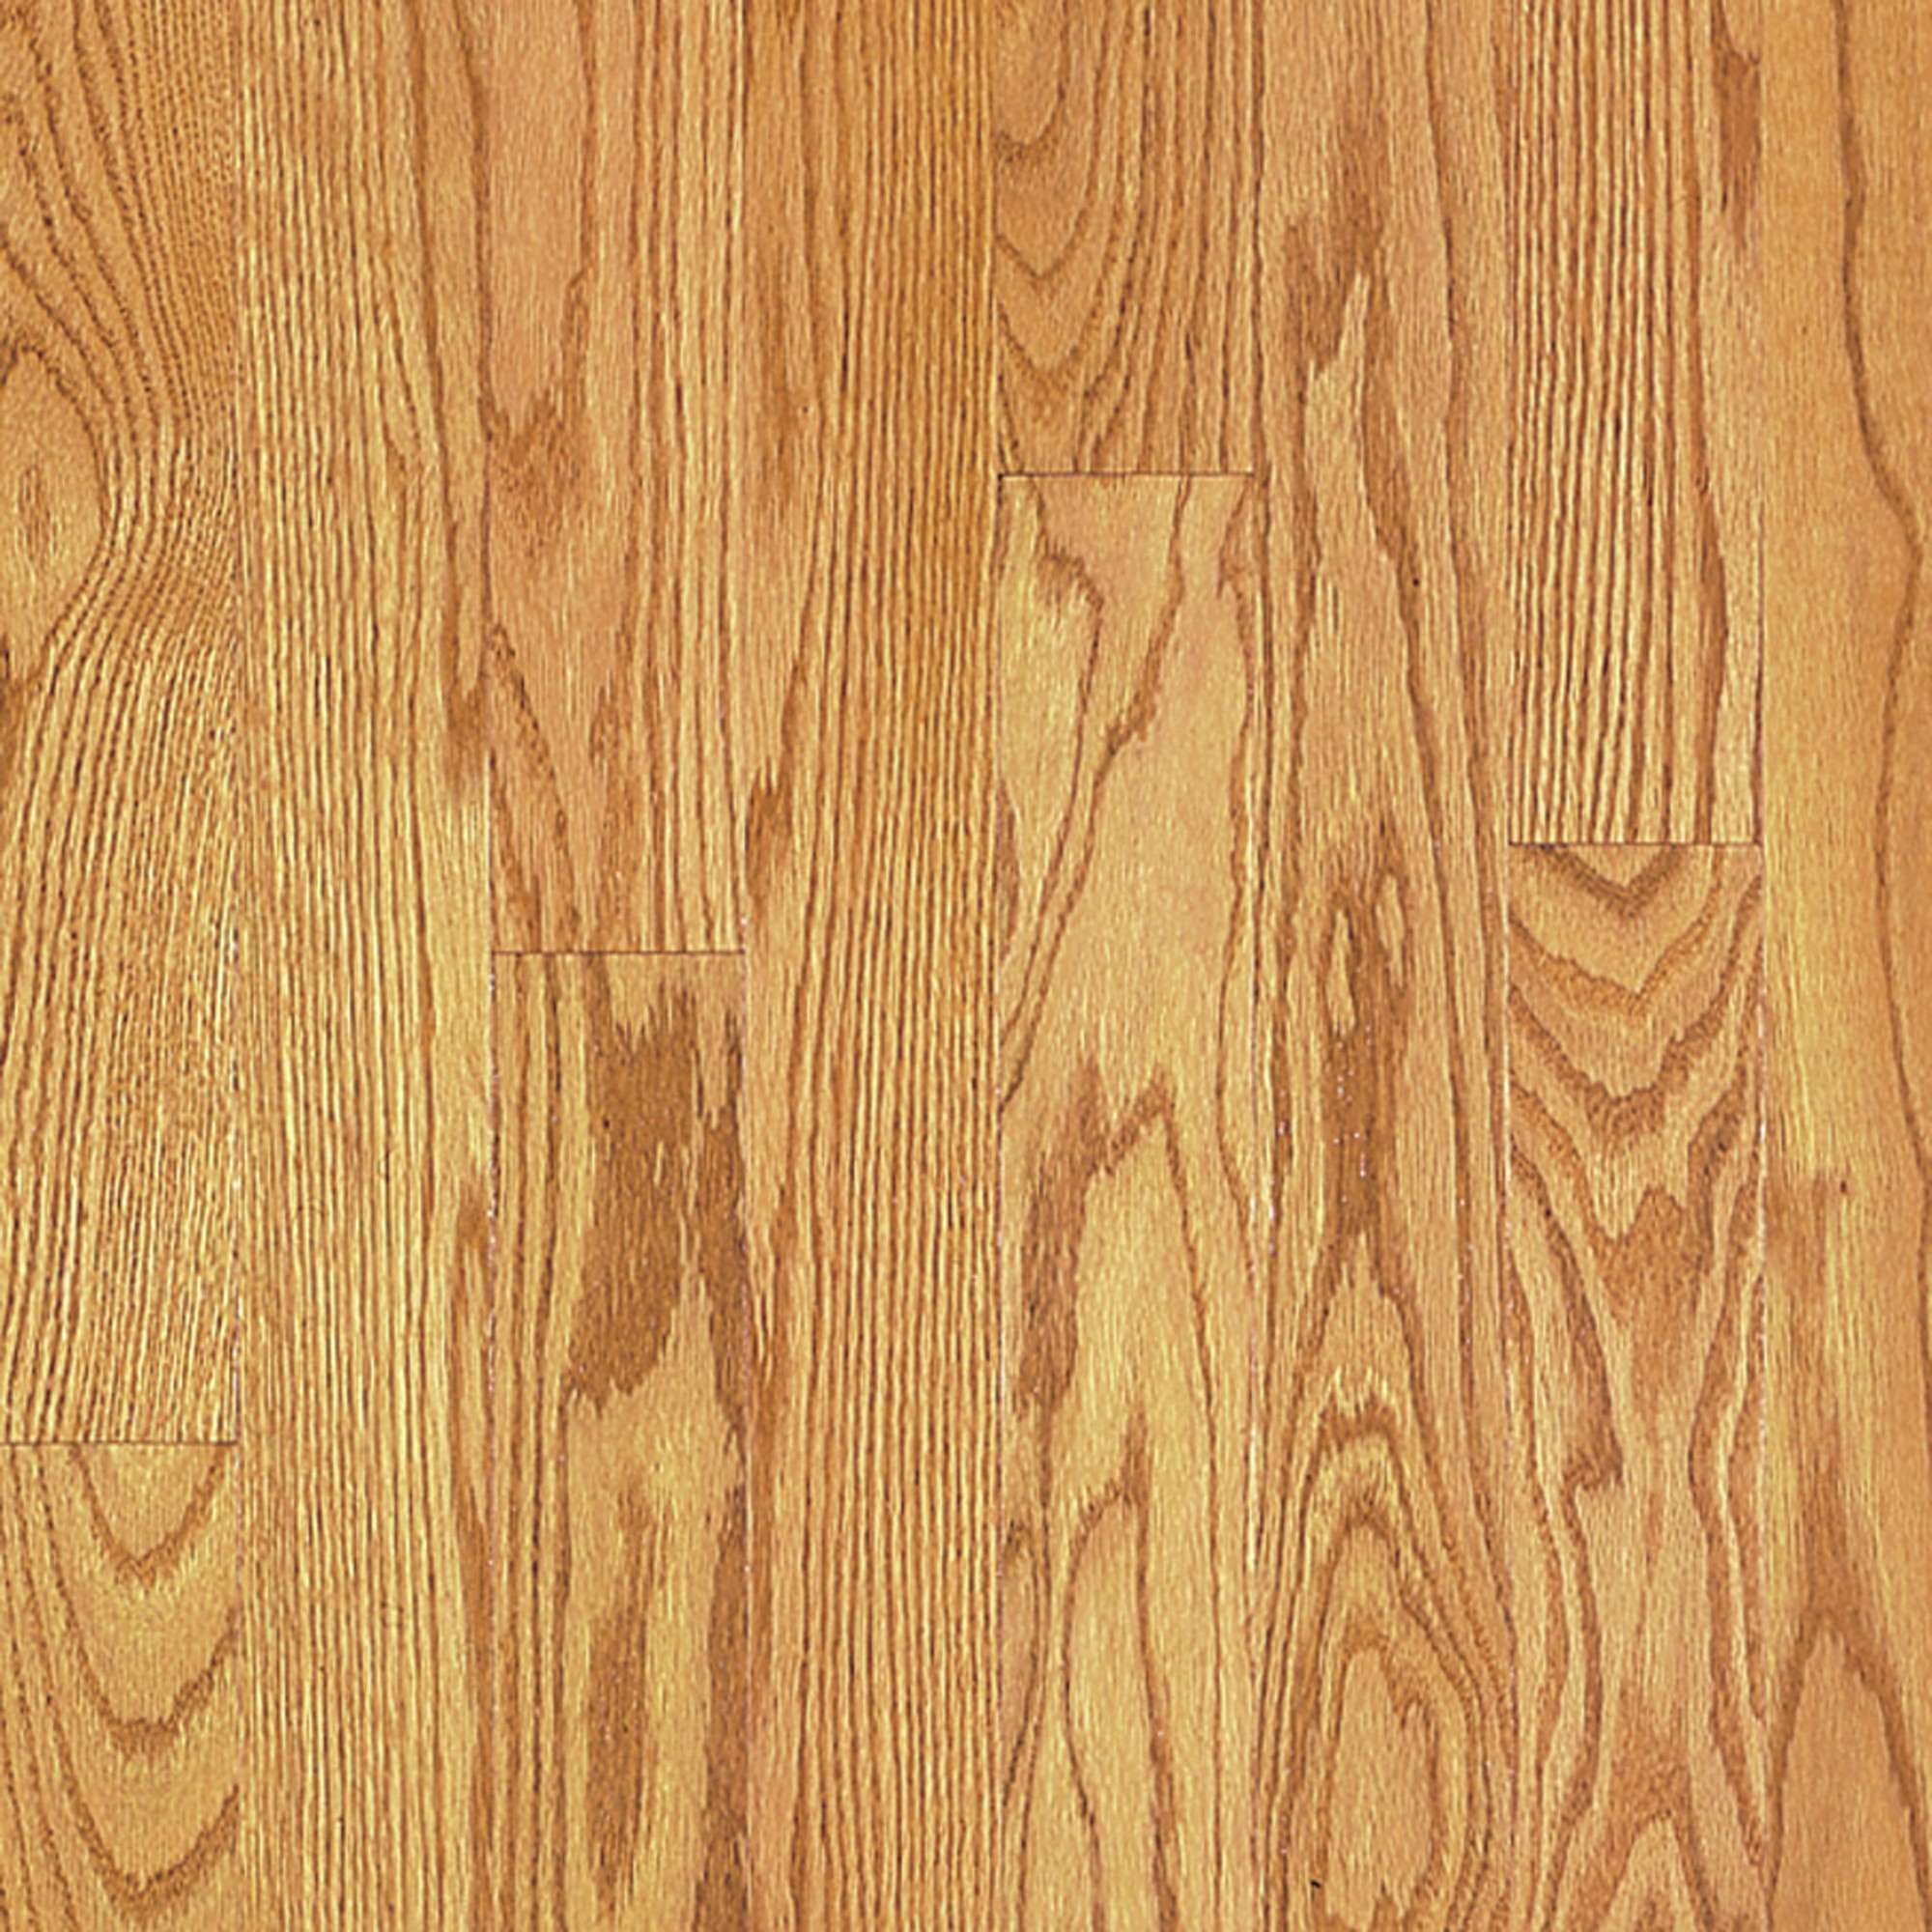 Smooth Red Oak Galliano Vintage Hardwood Flooring And